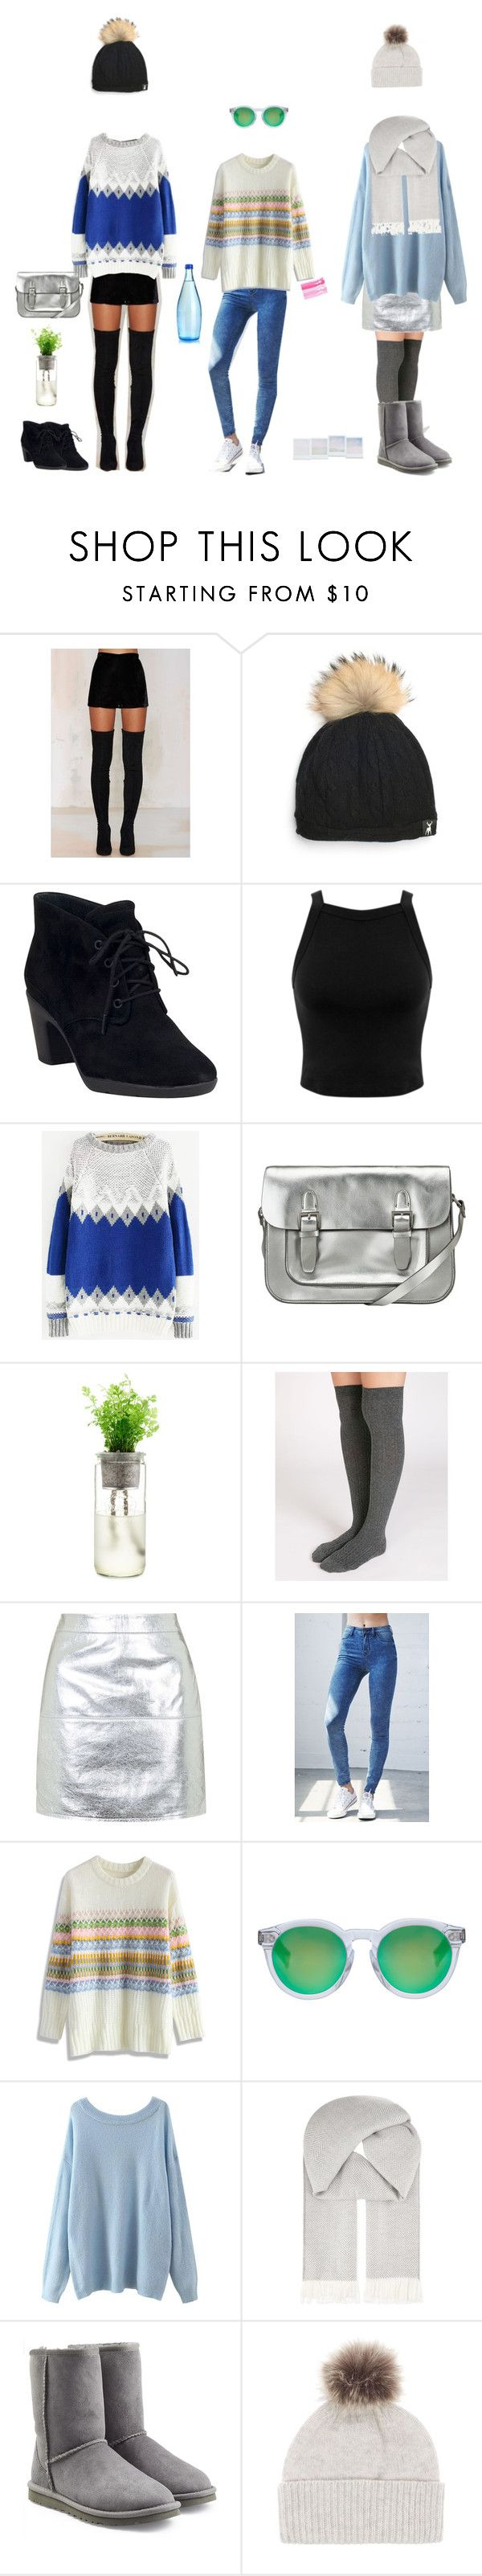 """""""Bobble hats❄️"""" by delia-s ❤ liked on Polyvore featuring Native Rose, Clarks, Miss Selfridge, Kin by John Lewis, Oysho, Topshop, Bullhead Denim Co., Chicwish, Illesteva and Johnstons"""